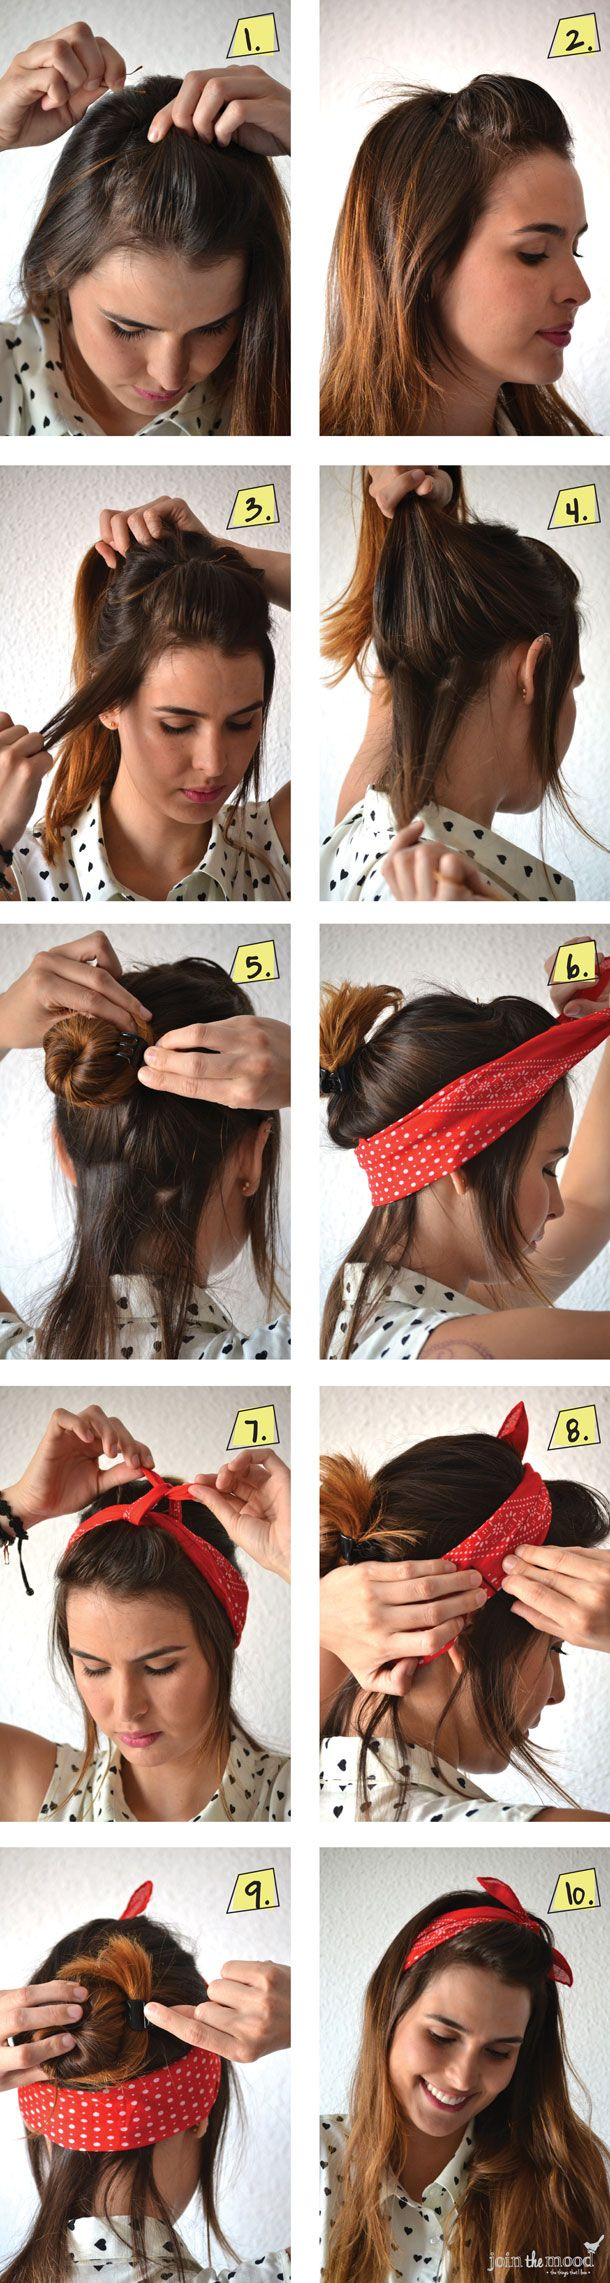 10 fabulous diy hairstyles with hair accessories | easy hairstyles